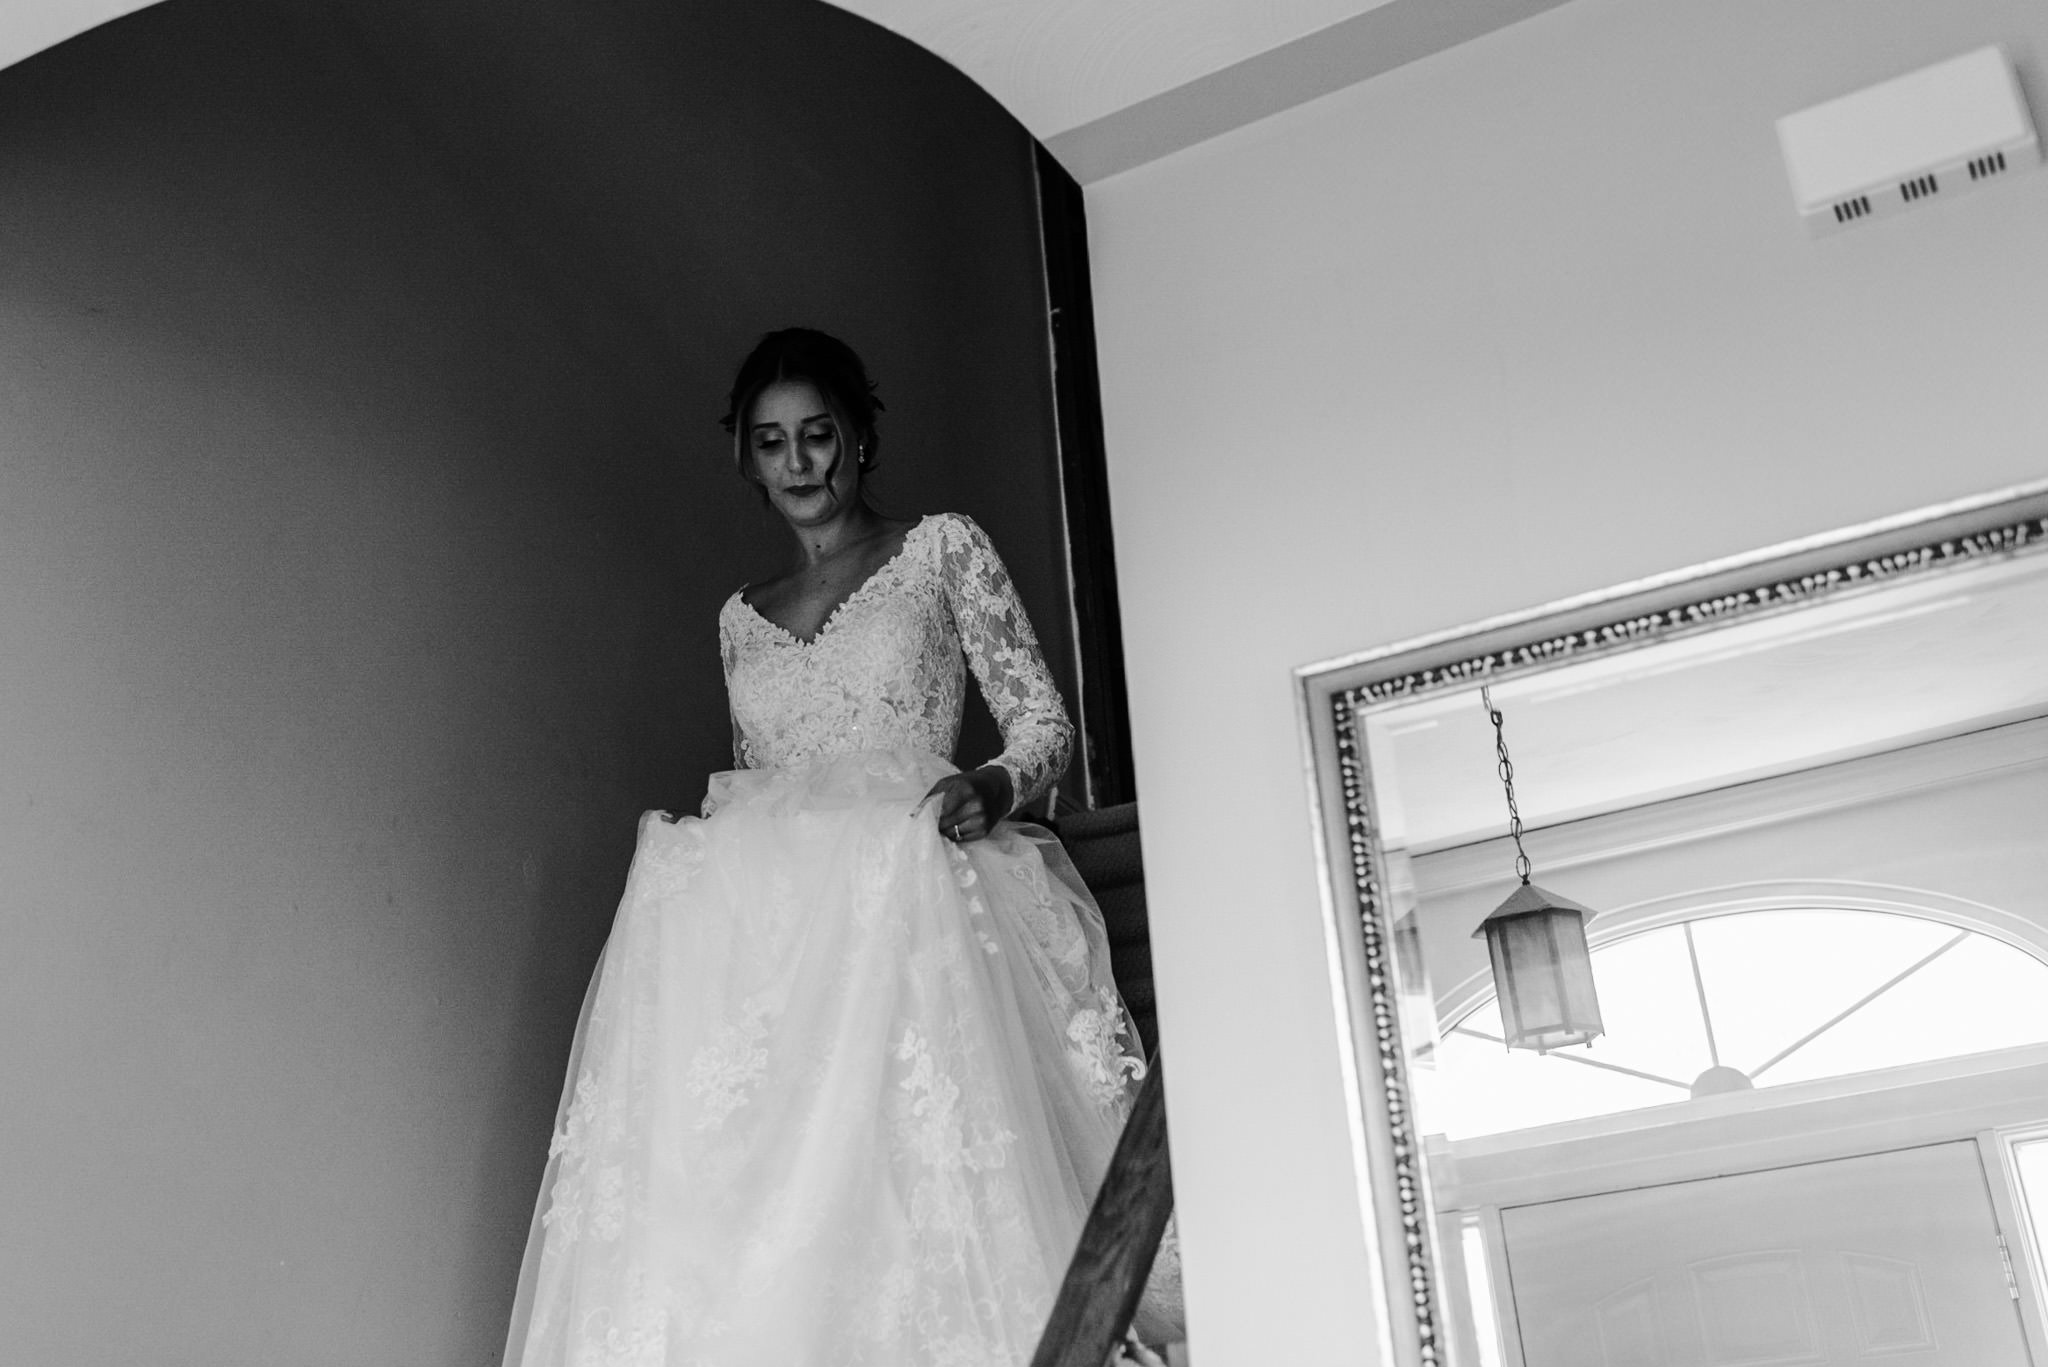 198-bride-black-white-candid-getting-ready.jpg